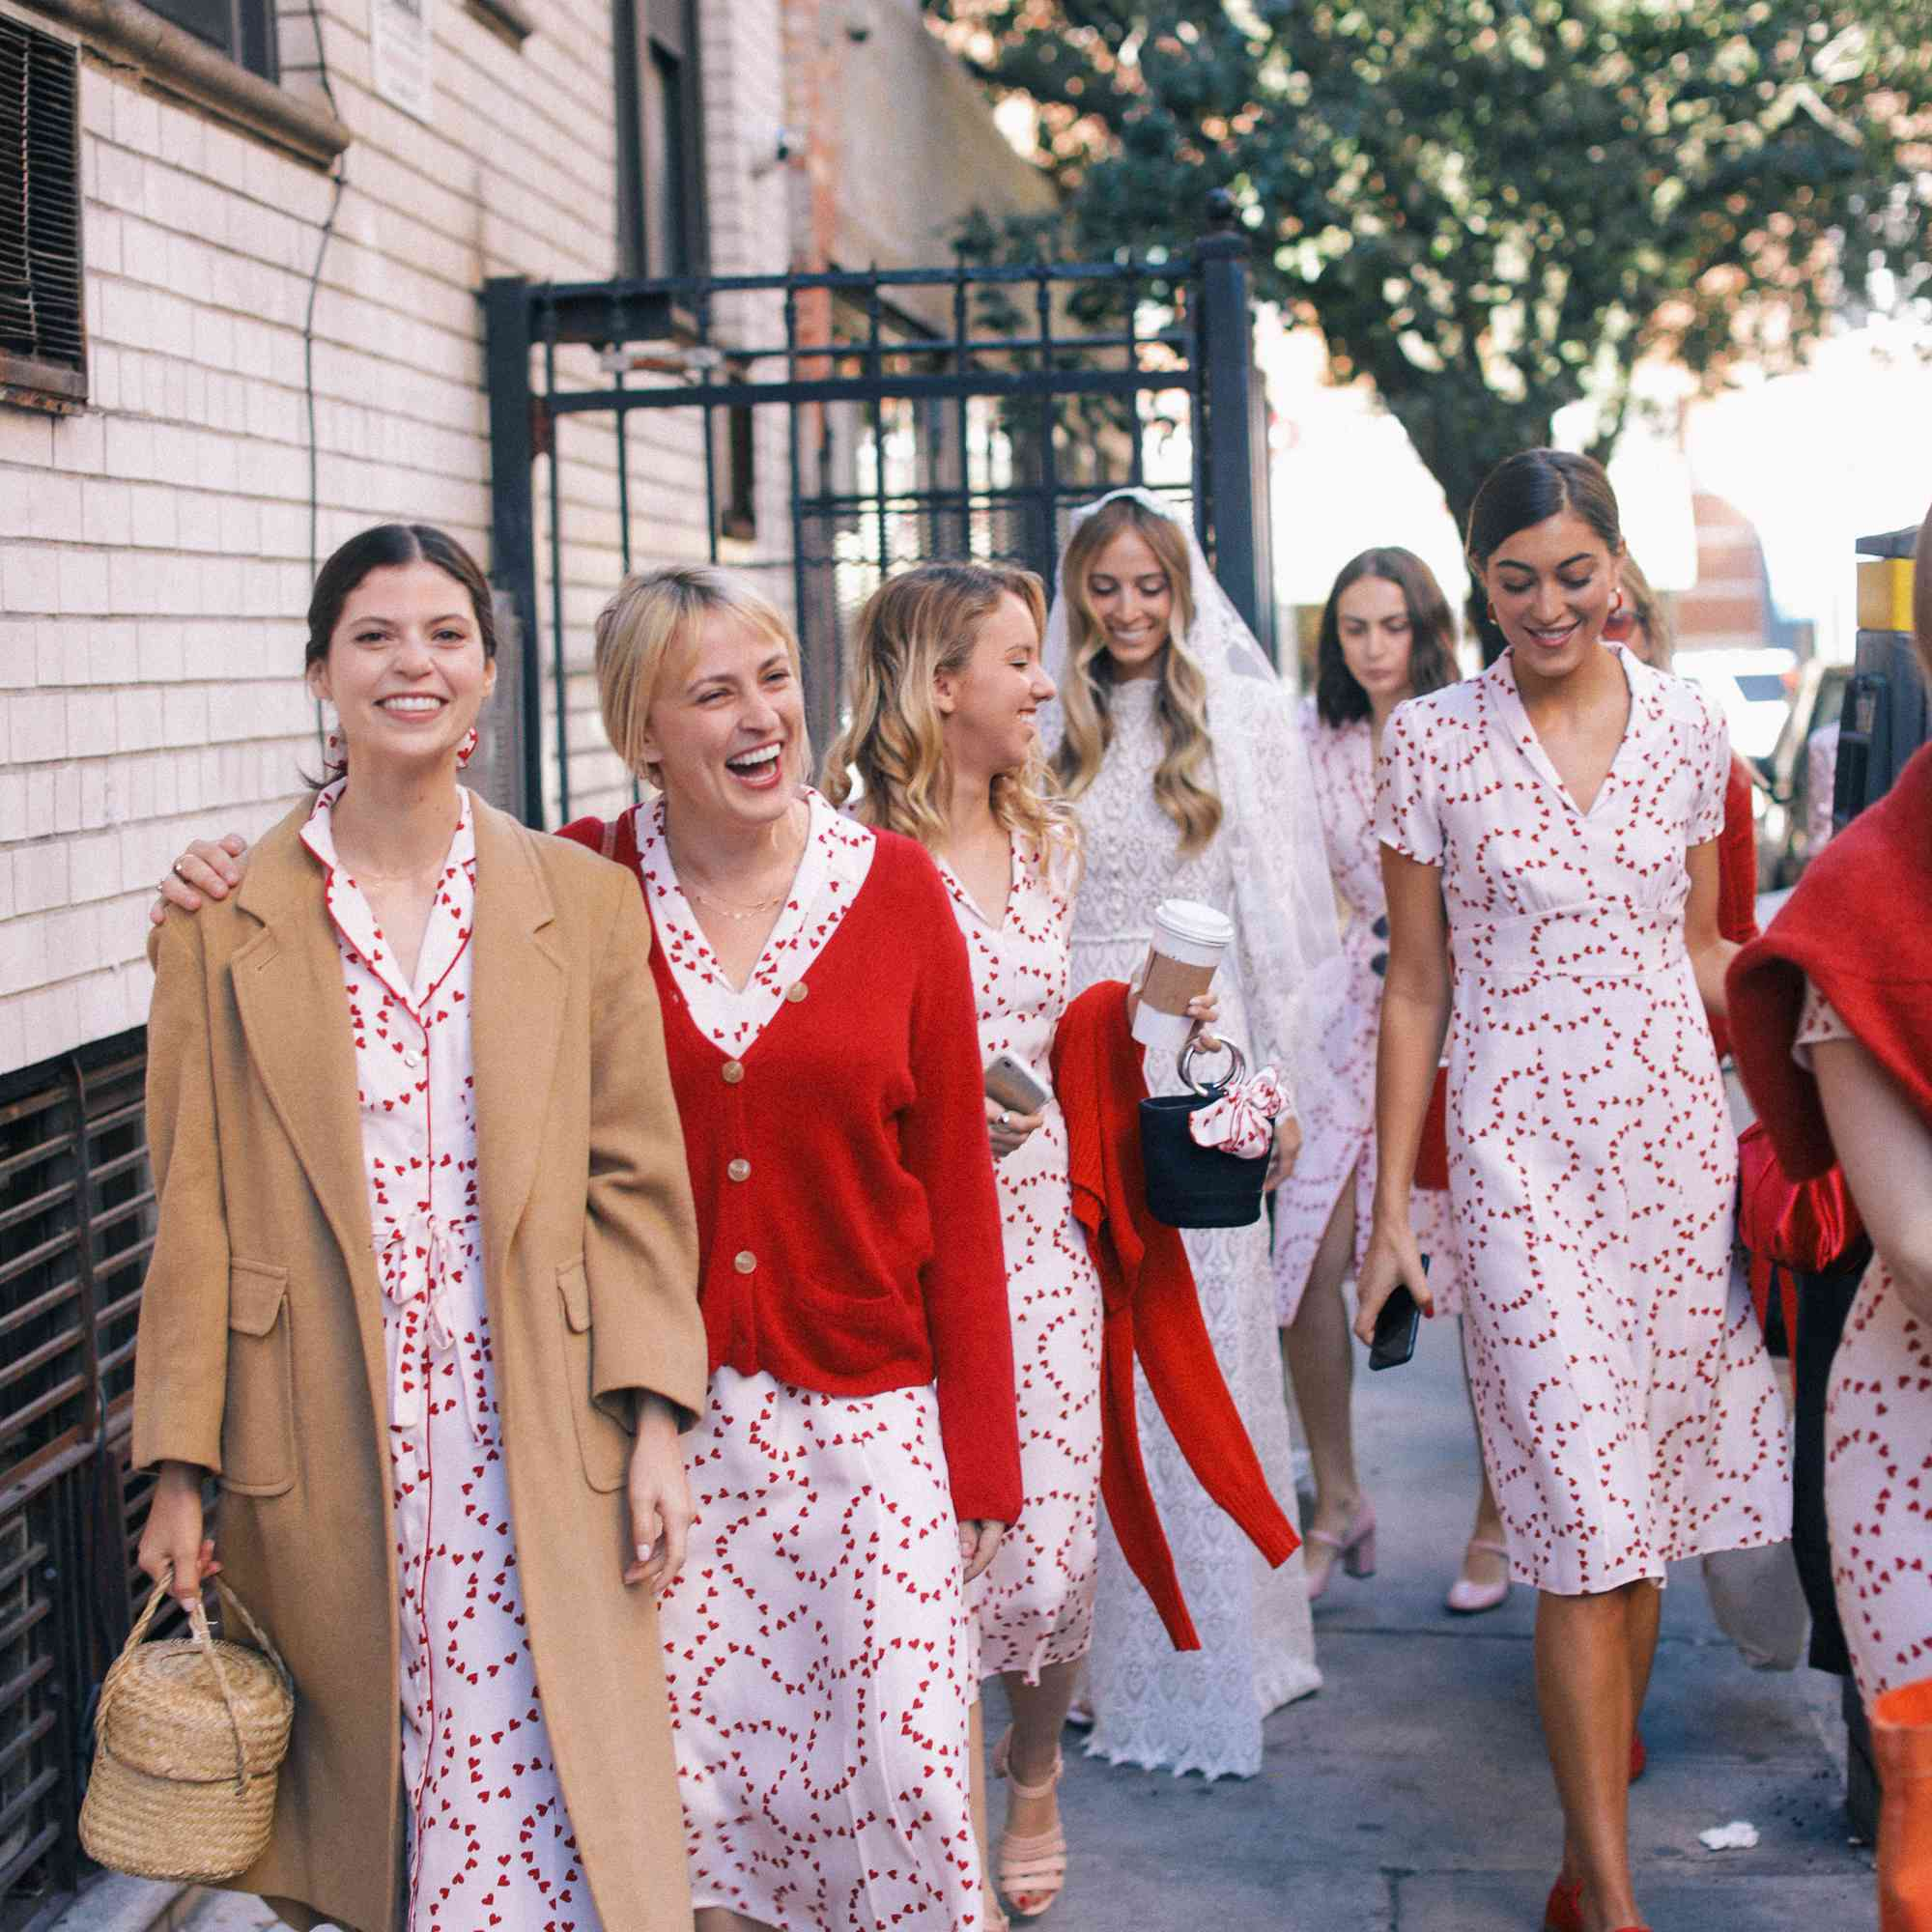 Bridesmaids wearing white dresses with red hearts